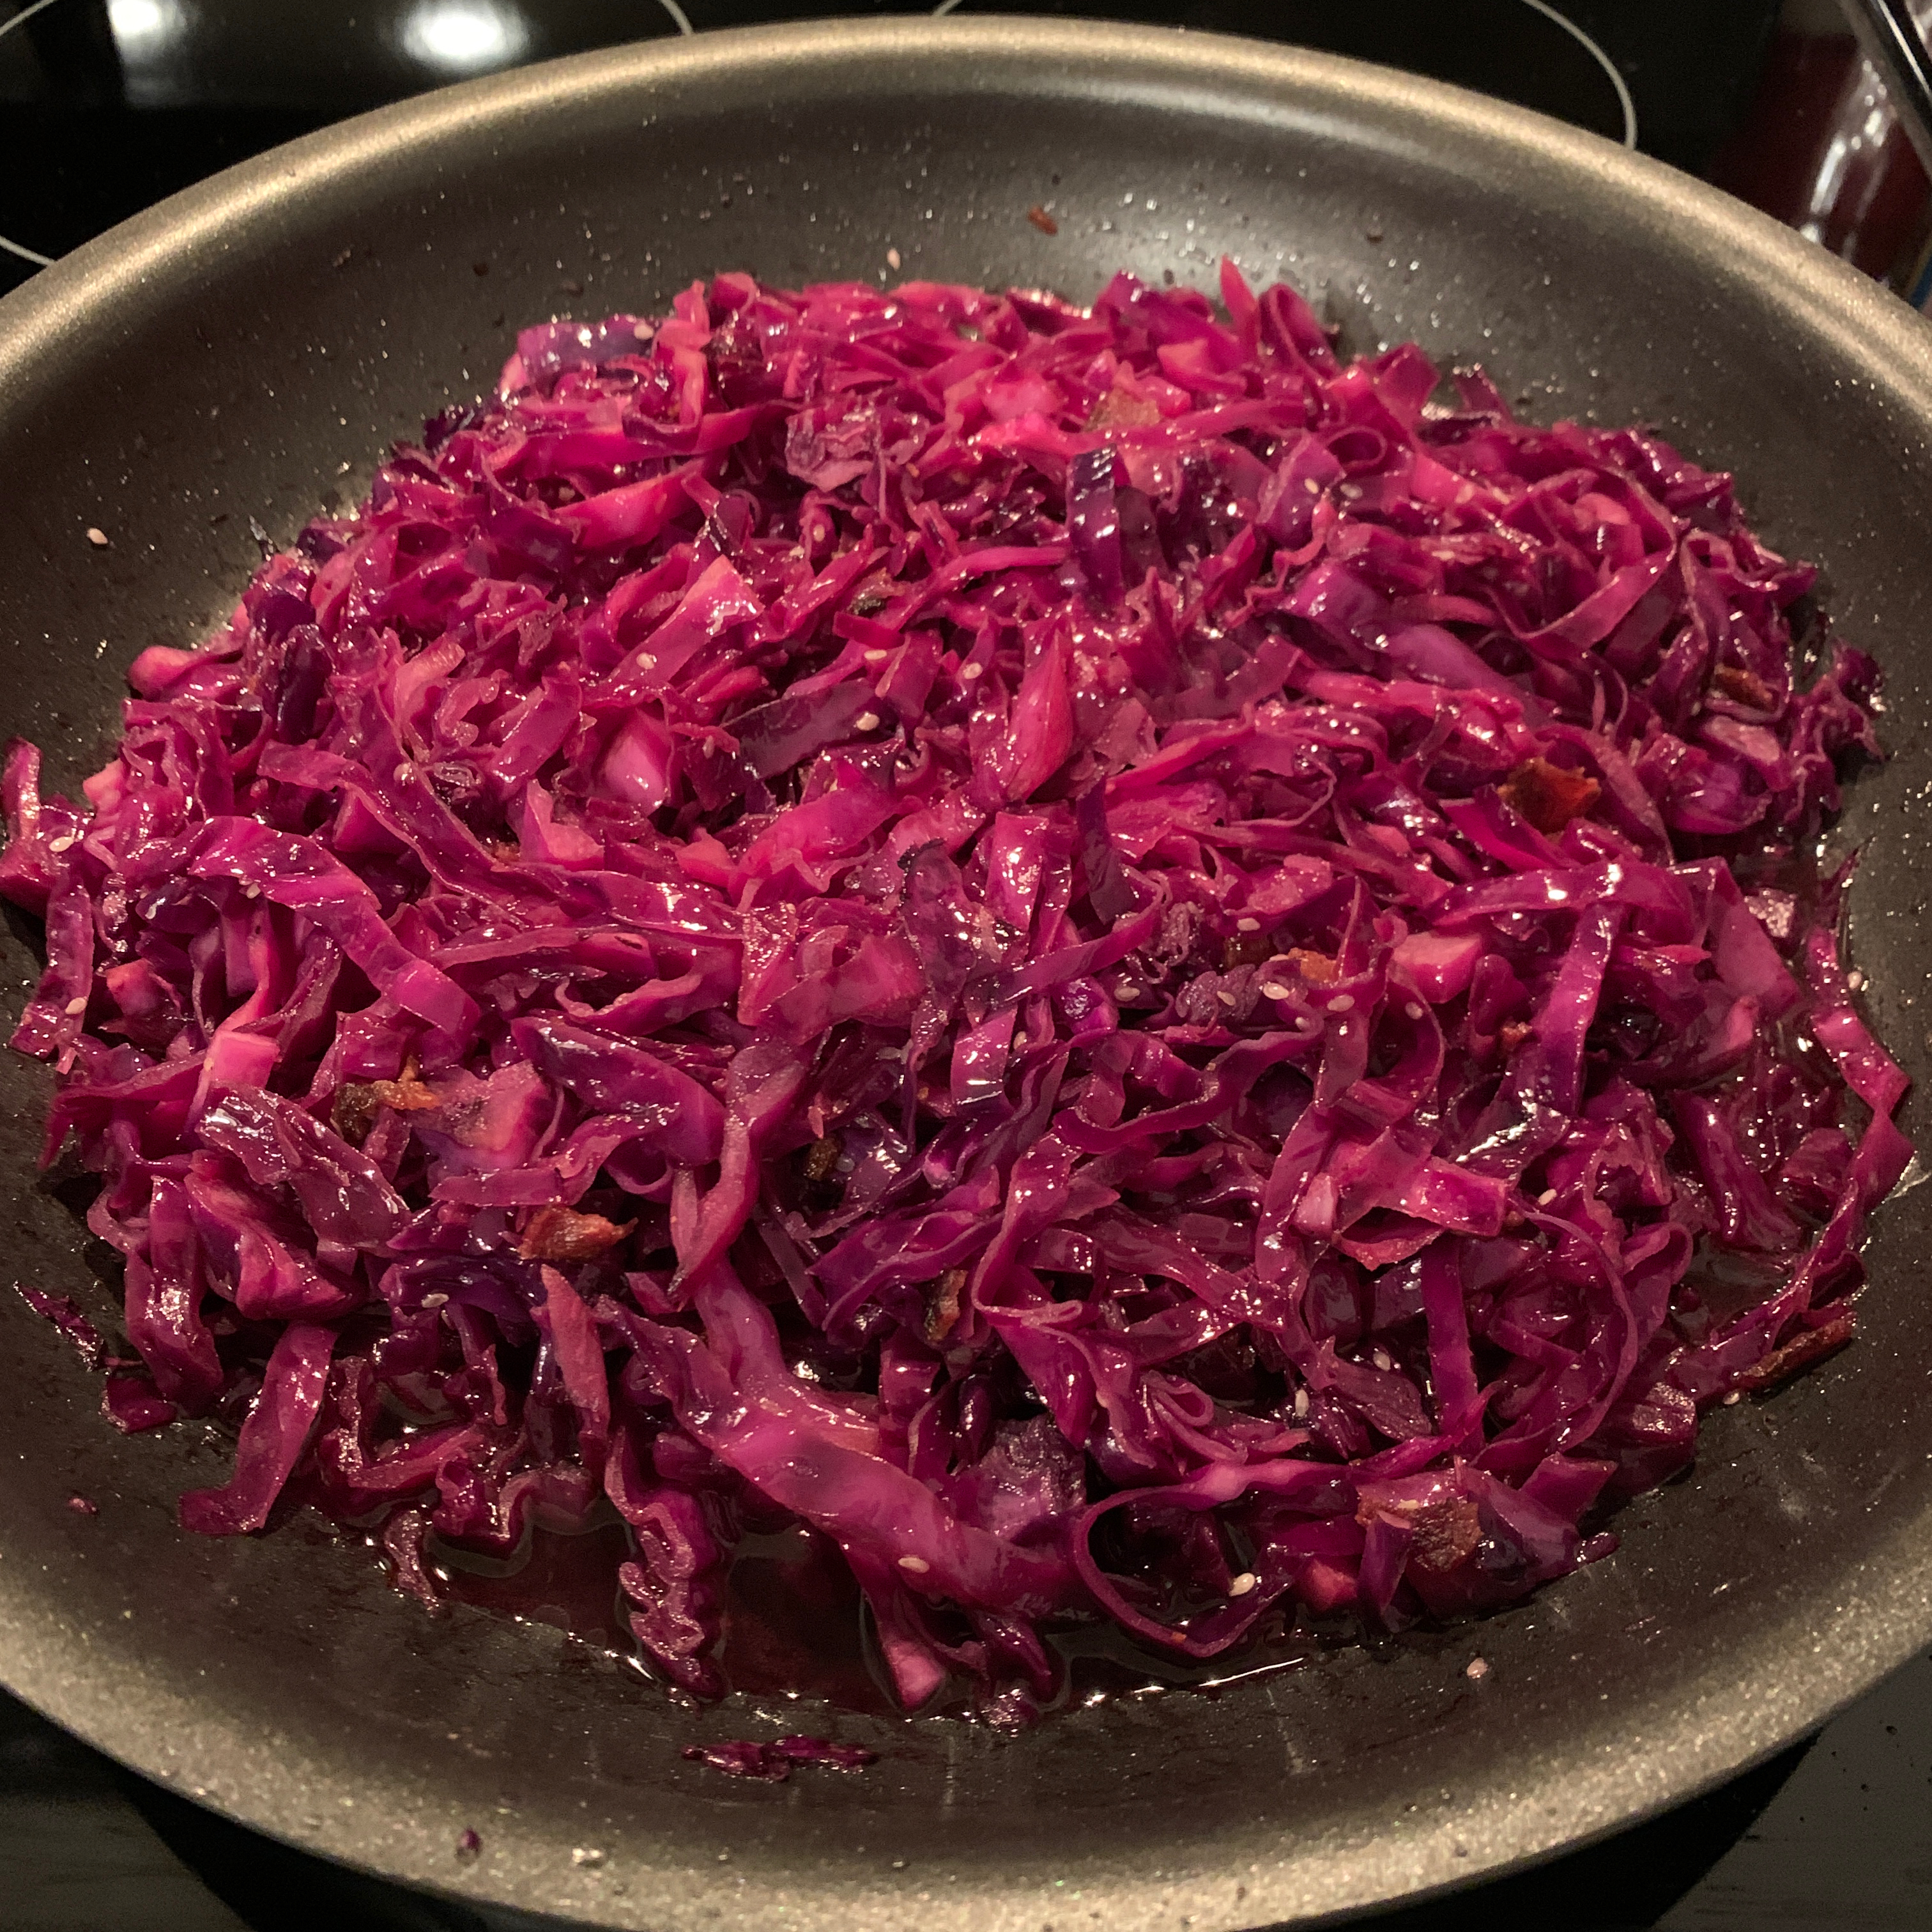 Chef John's Braised Red Cabbage